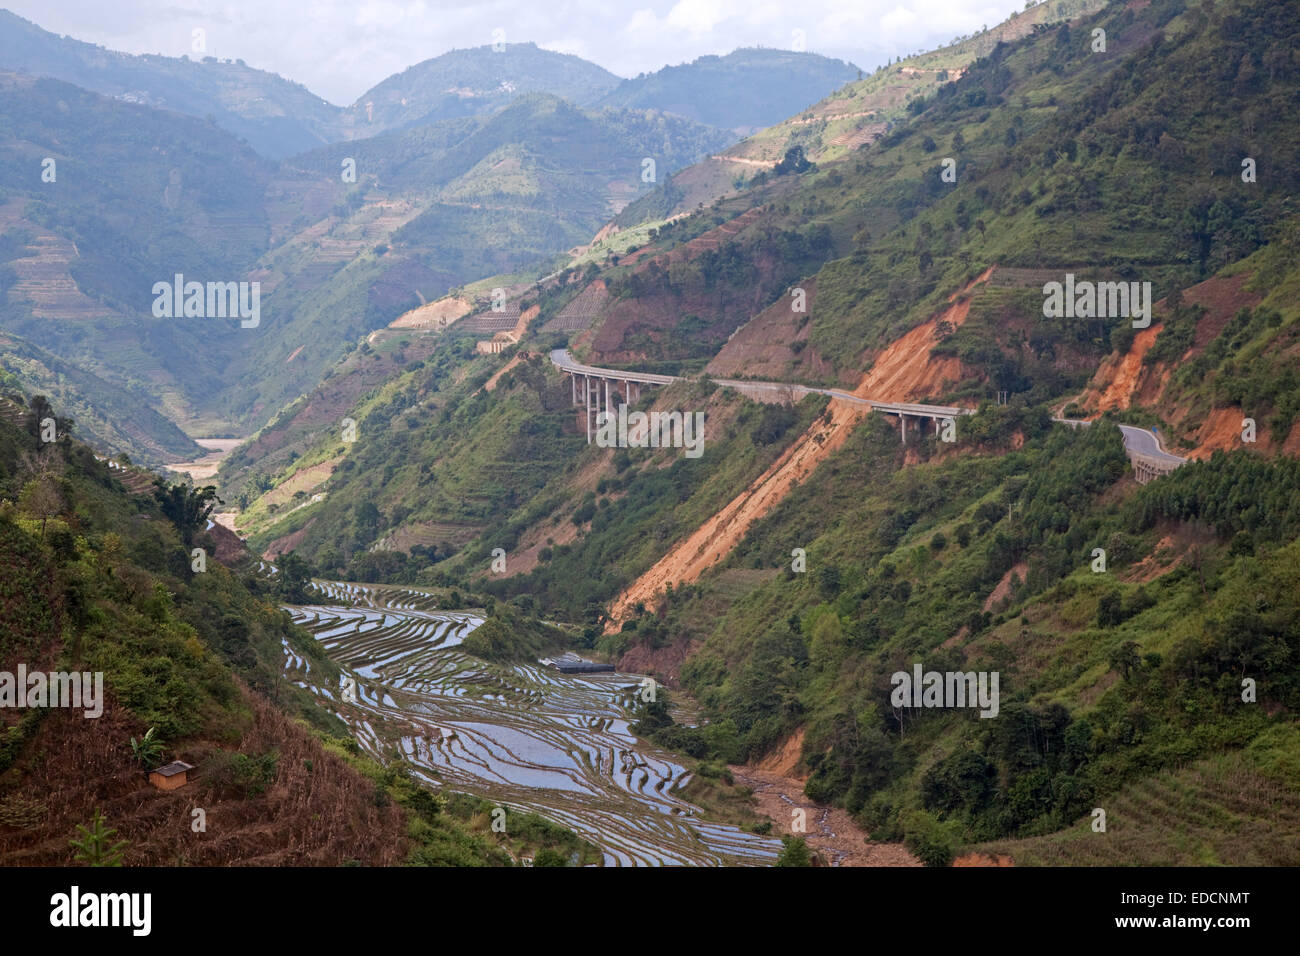 Chinese expressway and terraced rice paddies on hillside in the Yunnan Province, China - Stock Image